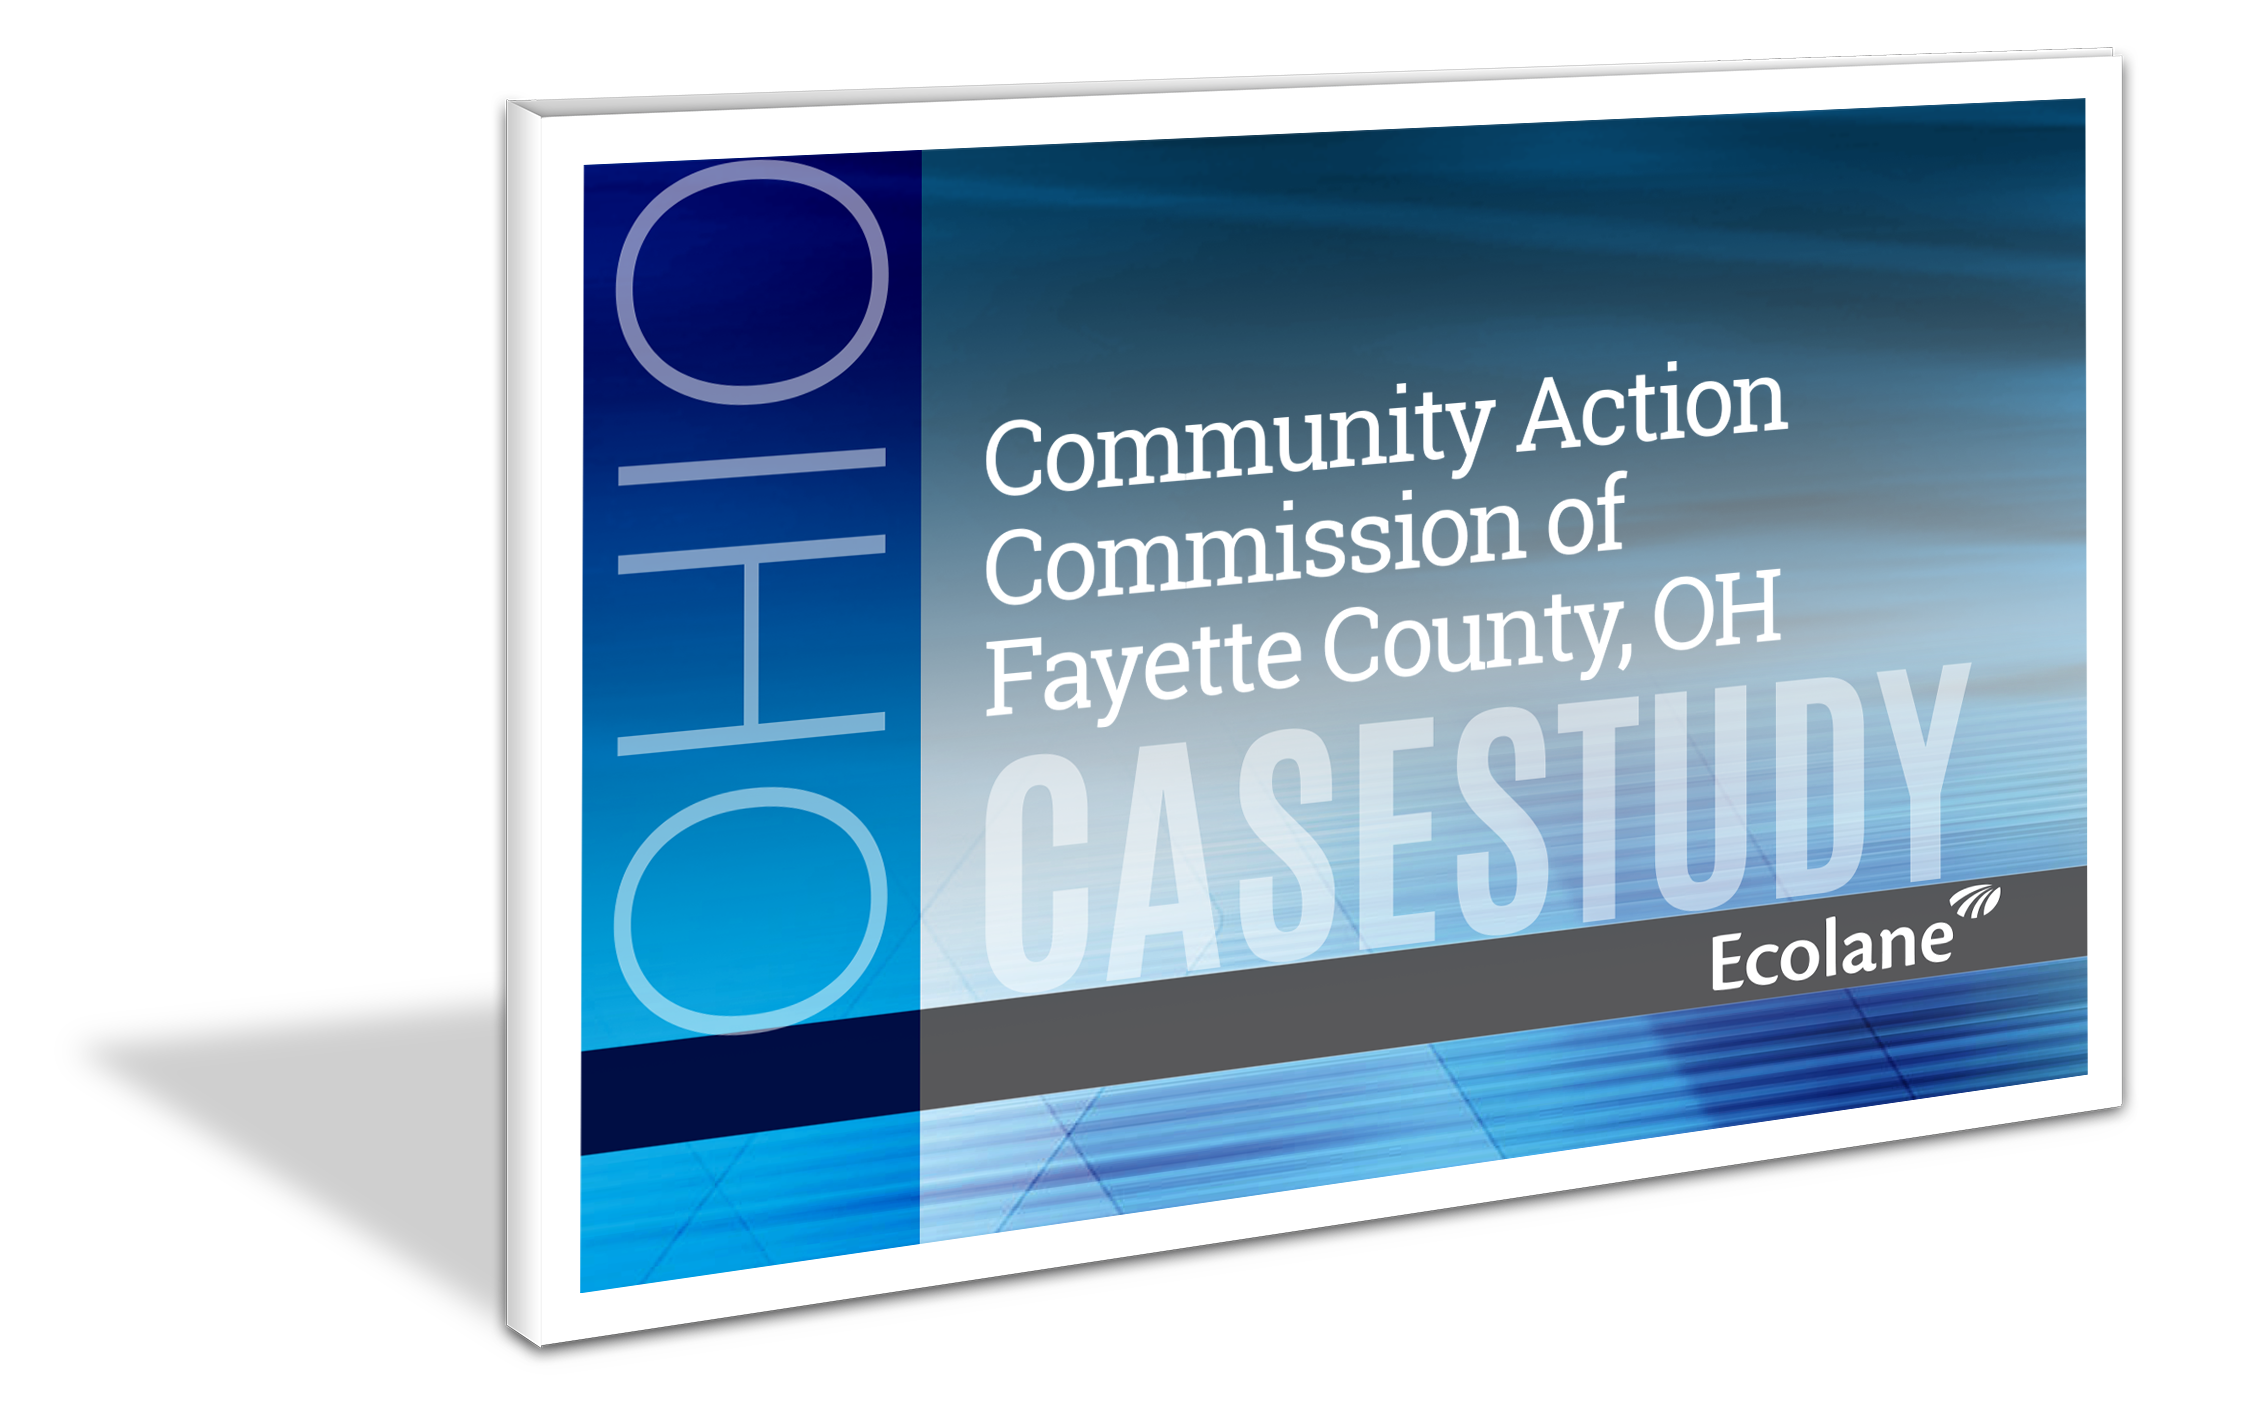 Fayette County Case Study